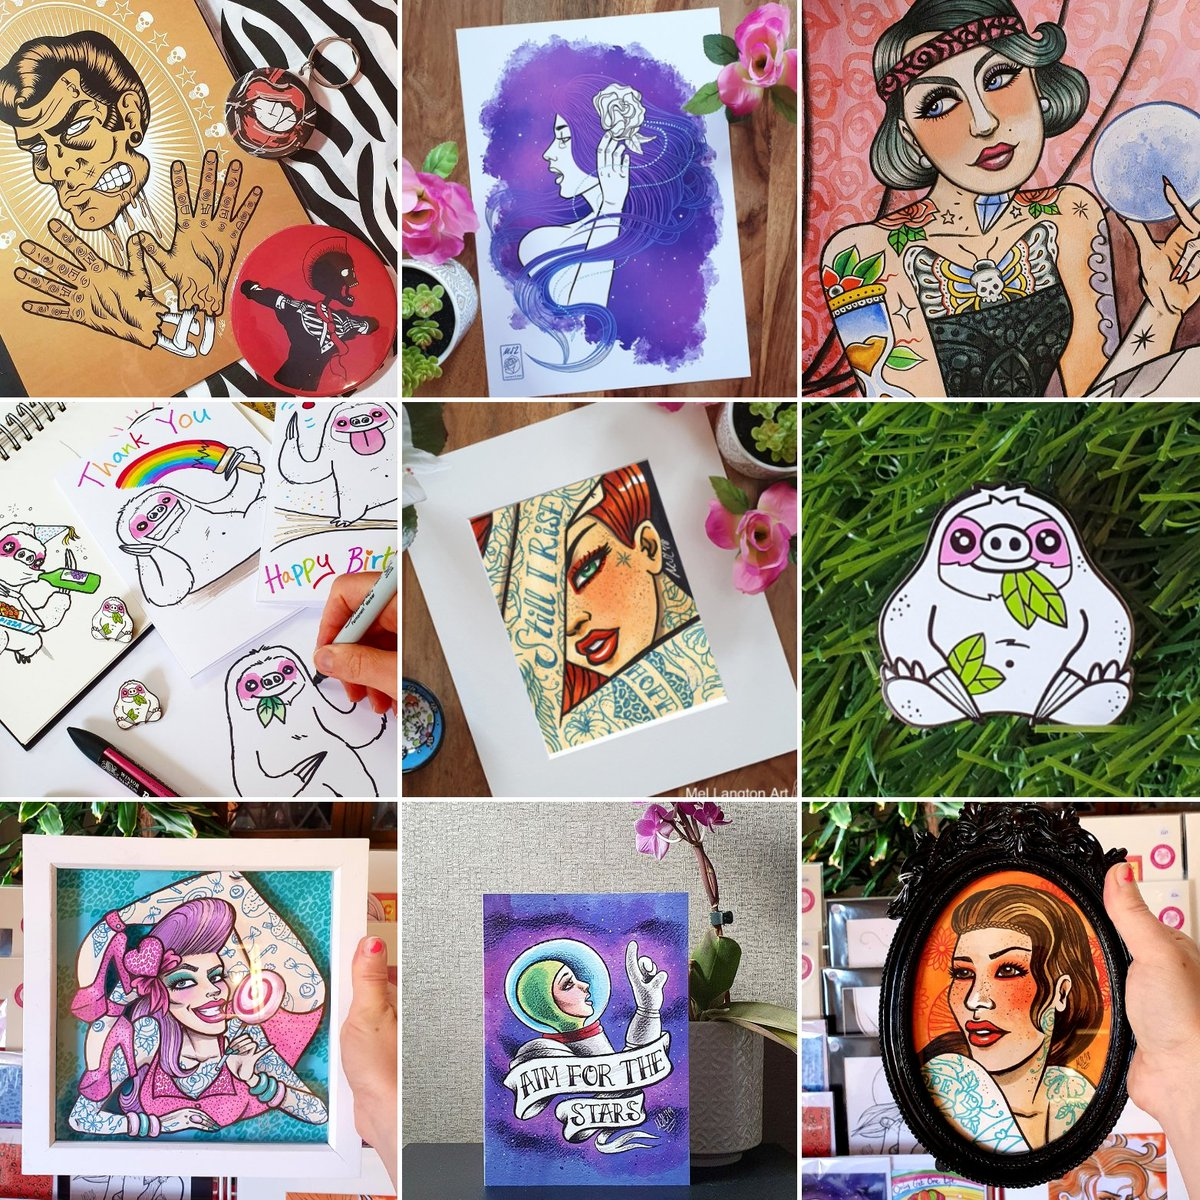 Calling all fans of inspirational individuals, bad ass ladies and of course Slothypops the sloth! Check out my bold, colourful and original art at my store for a truly unique gift this Christmas🎄  https://t.co/aDyUuZEfhD #LincsArtCraftHour  #LincsConnect  #LincsConnectChristmas https://t.co/G90C949zO3